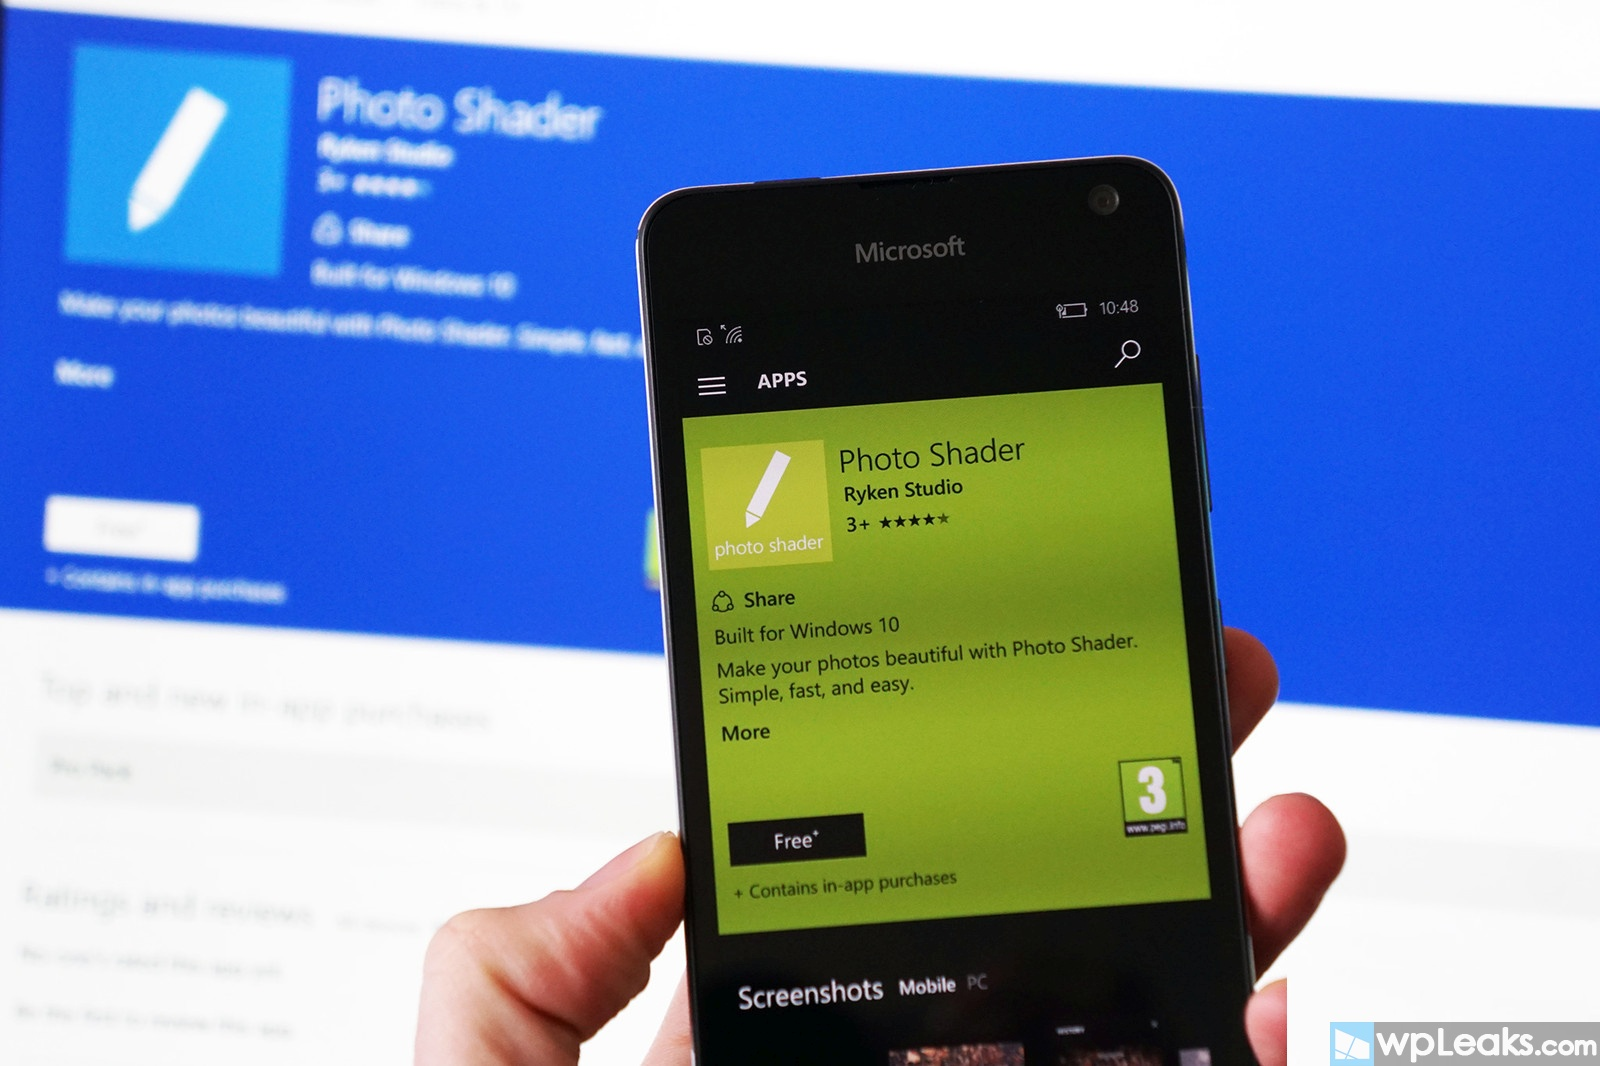 photo-shader-windows-10